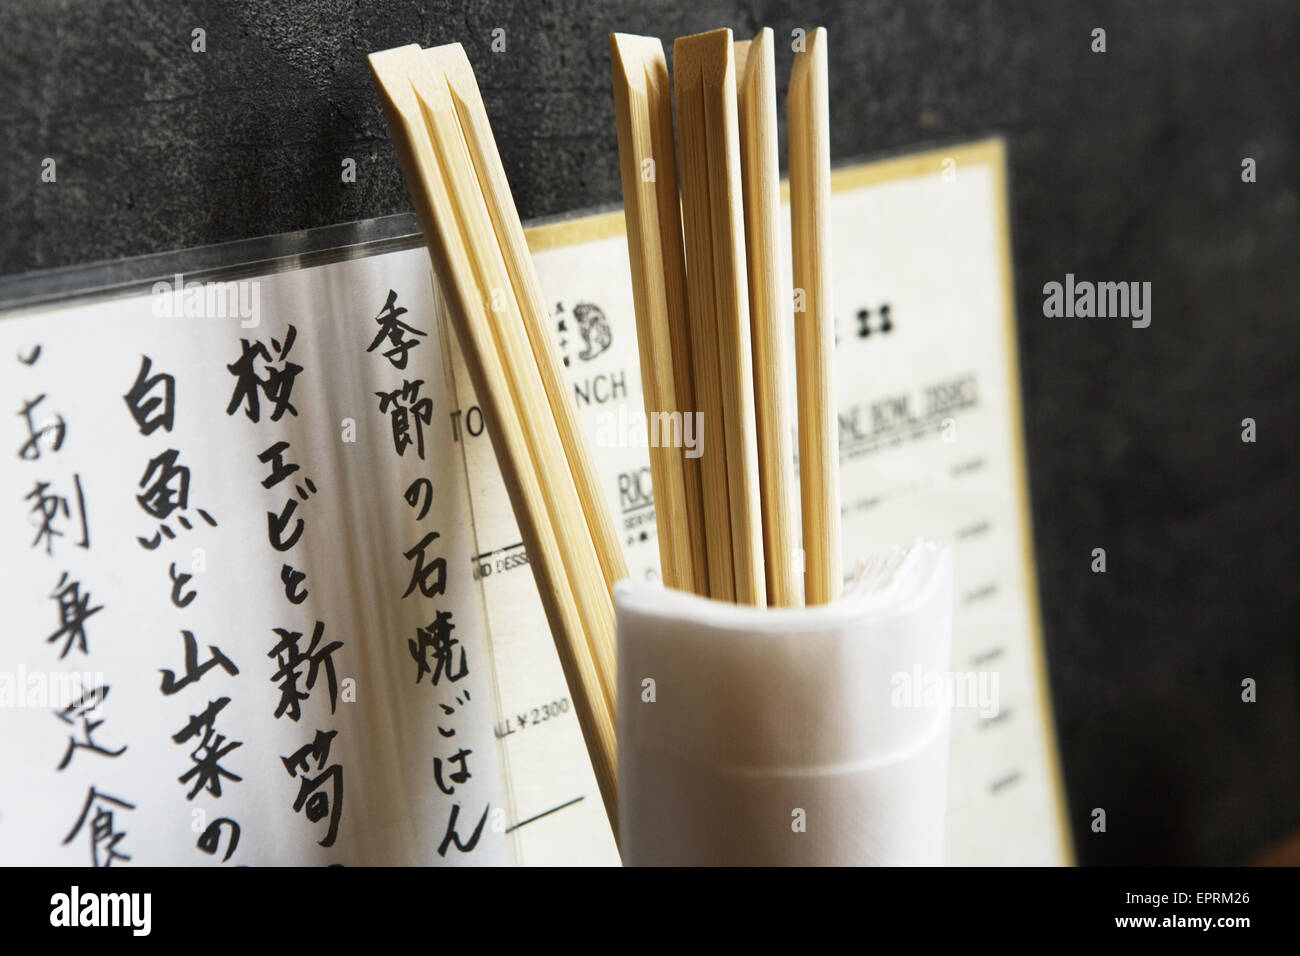 Restaurant menu, chopsticks in glass with napkins against wall, Tokyo, Japan. - Stock Image